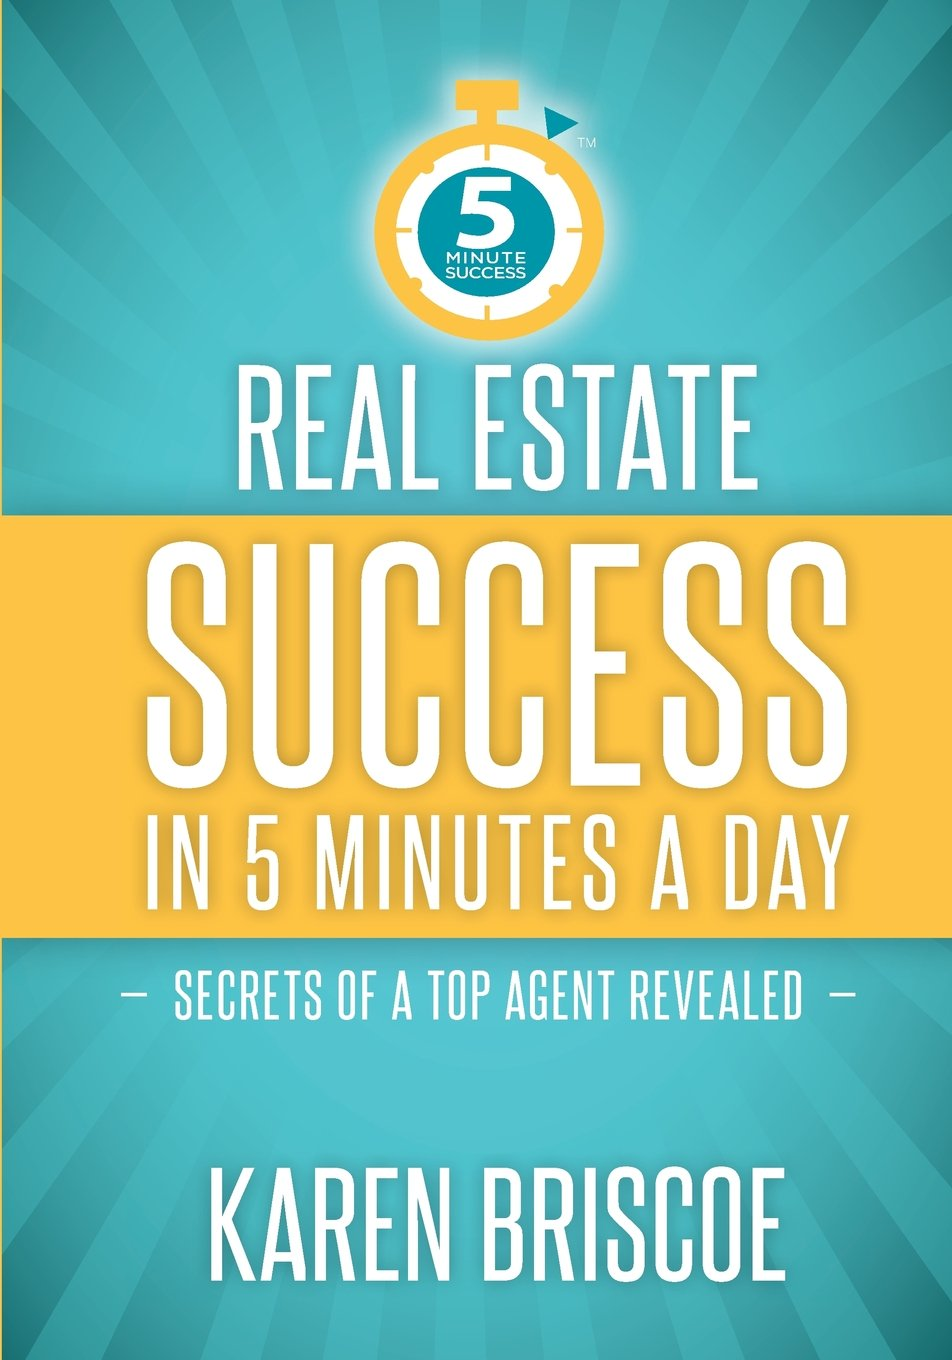 Real Estate Success in 5 Minutes a Day: Secrets of a Top Agent Revealed (5  Minute Success) (Volume 1): Karen Briscoe: 9781936961276: Amazon.com: Books